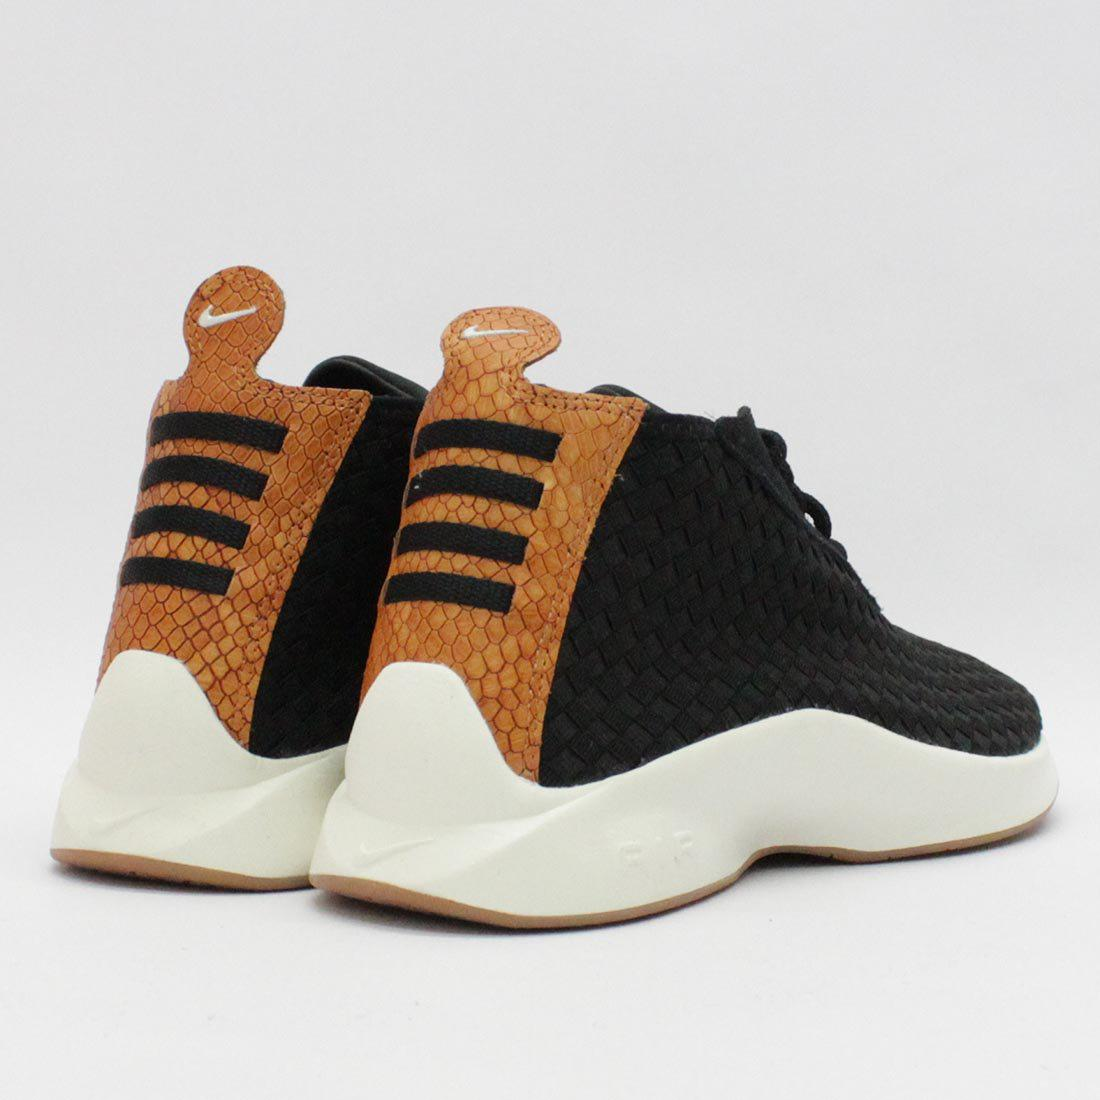 innovative design 15587 66440 Lyst - Nike Trainers Nike Air Woven Boot Black 924463 002 in